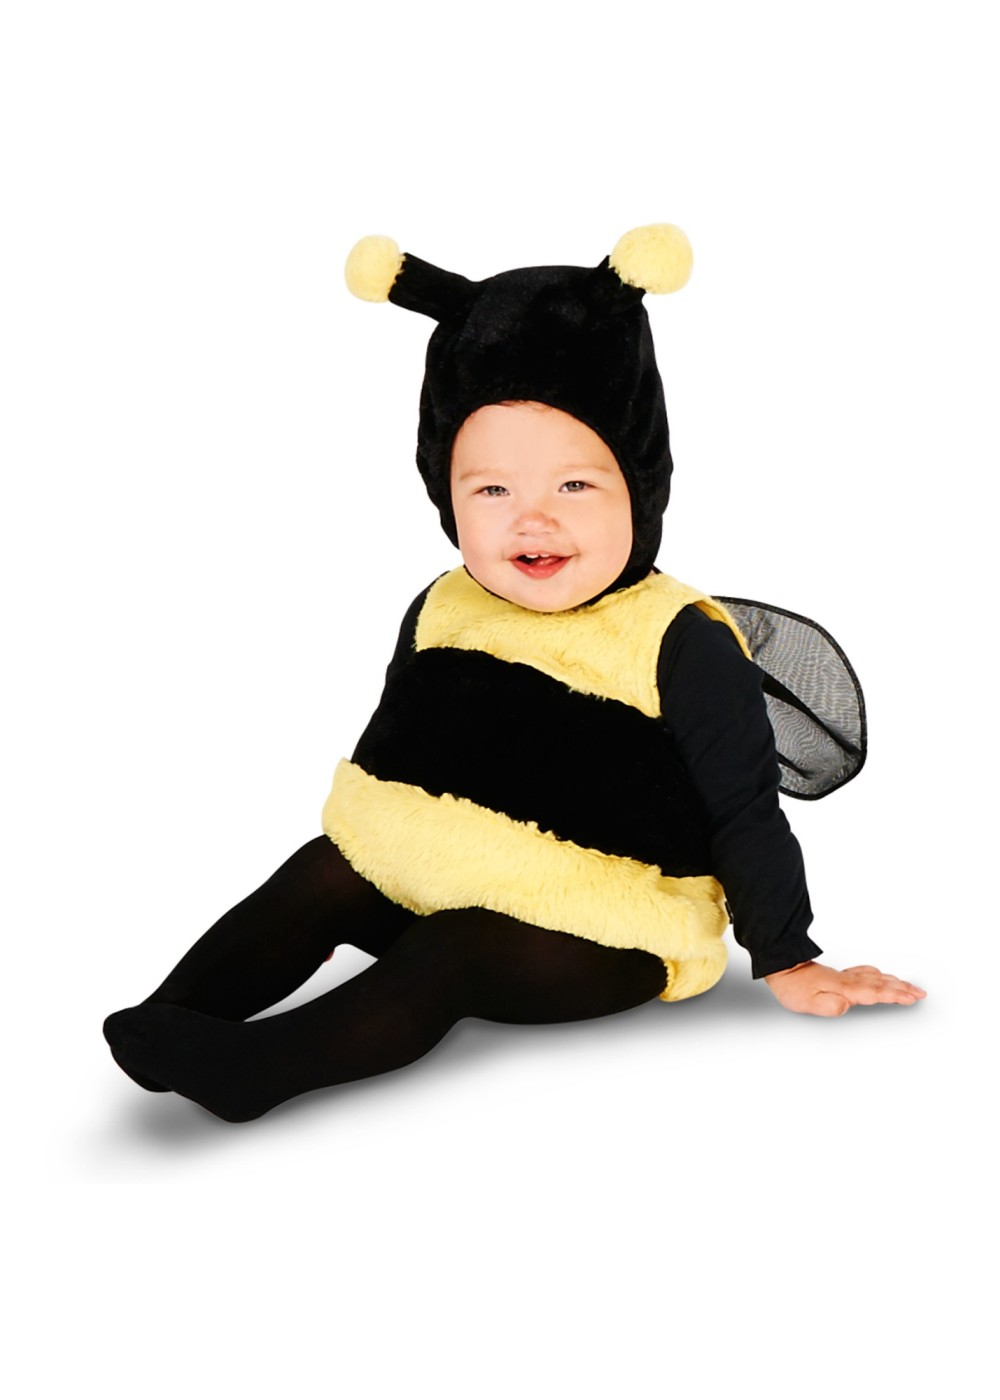 Perhaps you're a new parent, and you're looking for the first costume your new addition has ever worn. Or maybe you've been a parent for awhile now and you like to dress up your baby up for a good laugh while visiting the grandparents.